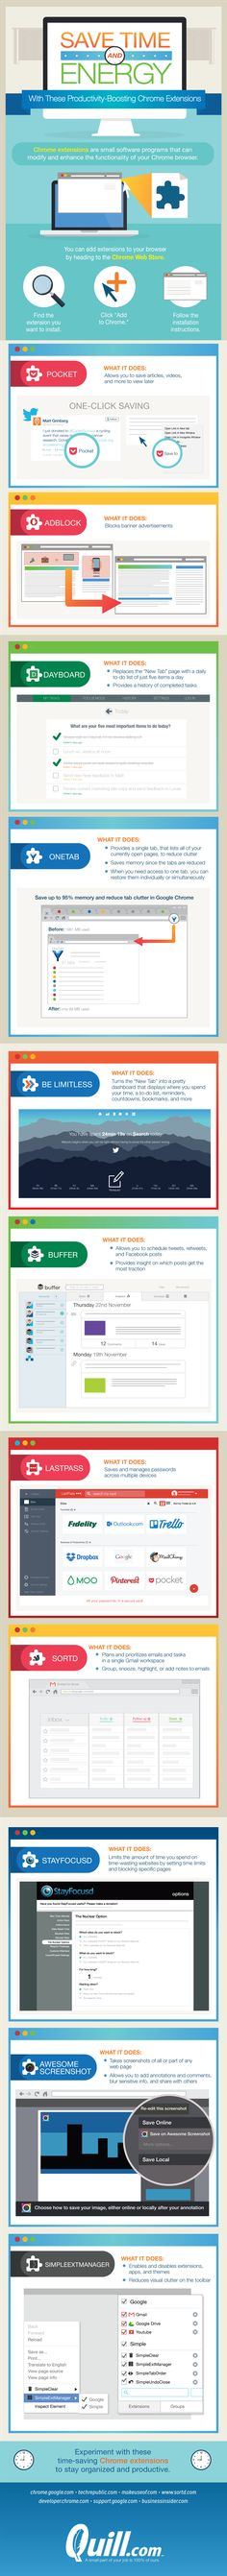 Save Time And Energy With Productivity-Boosting Chrome Extensions #Infographic #Business #WebDevelopment